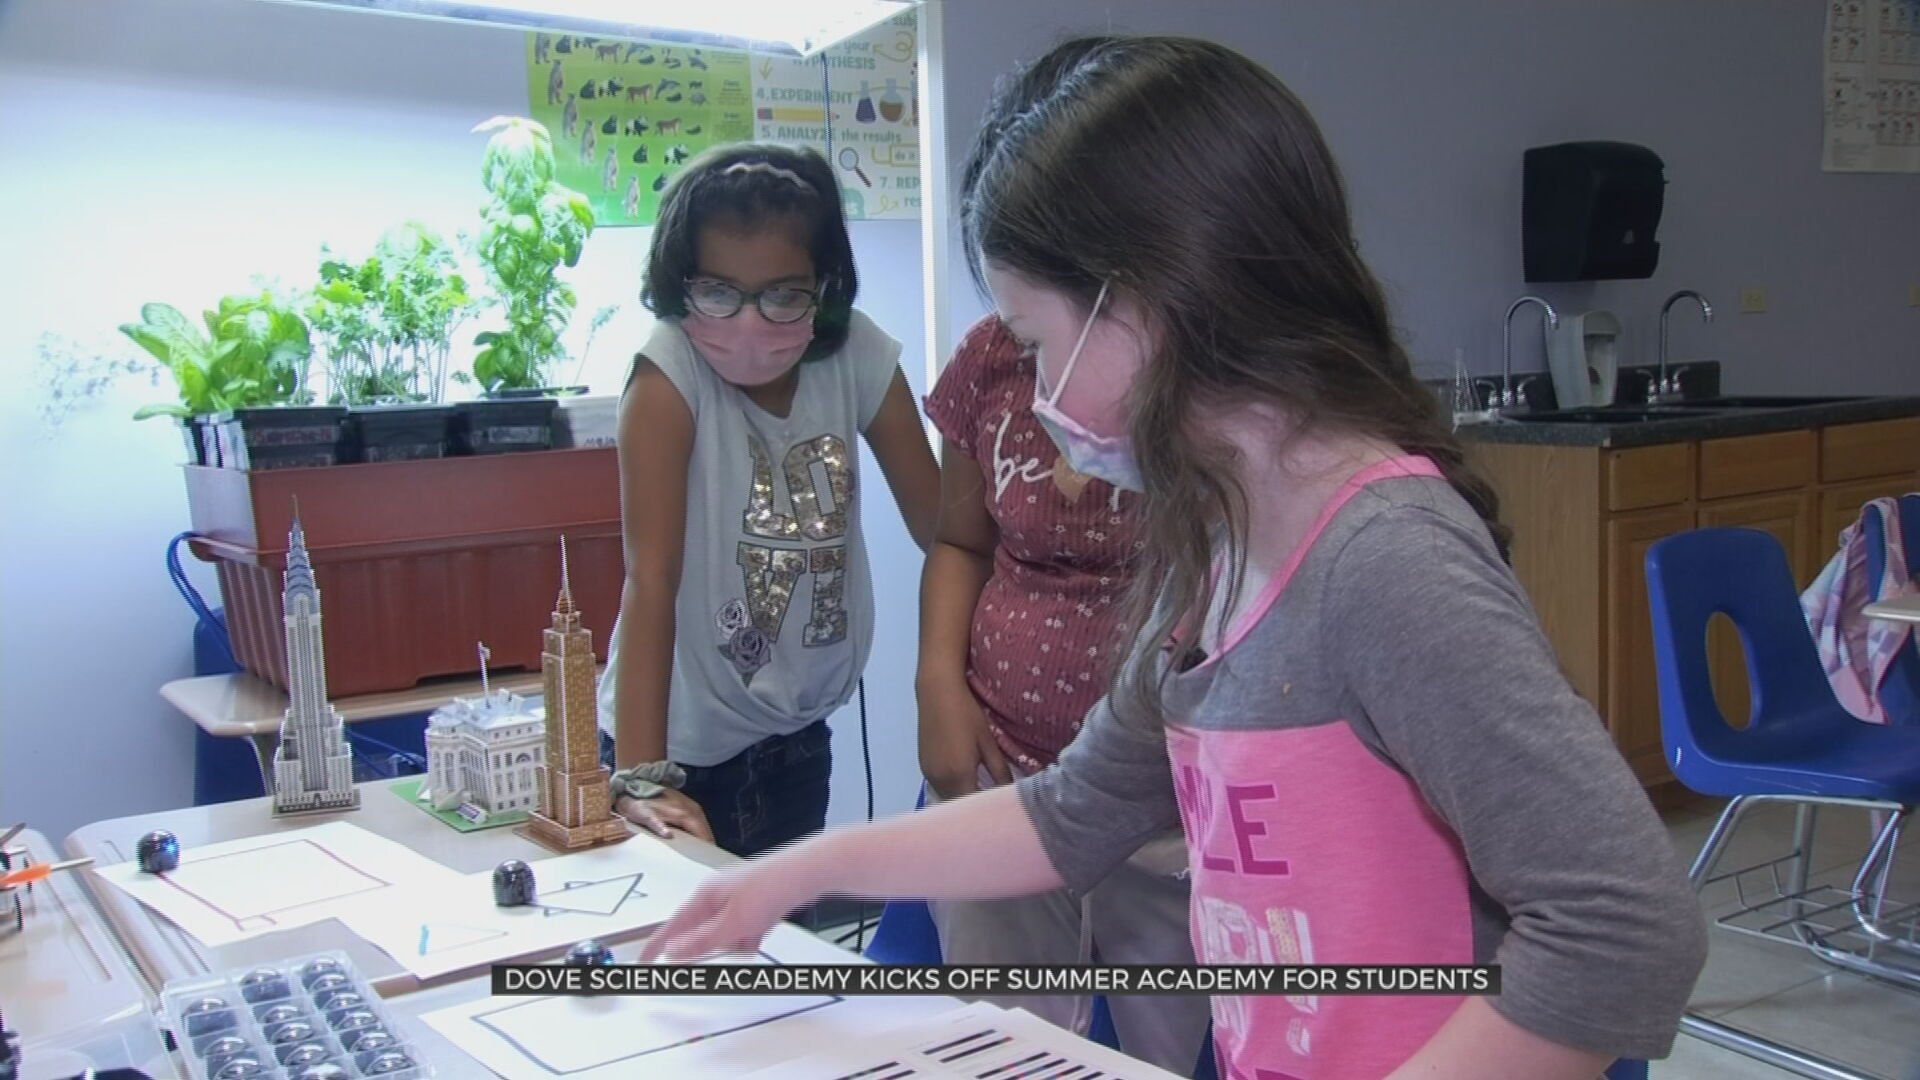 Dove Science Academy Kicks Off Summer Camp For Students